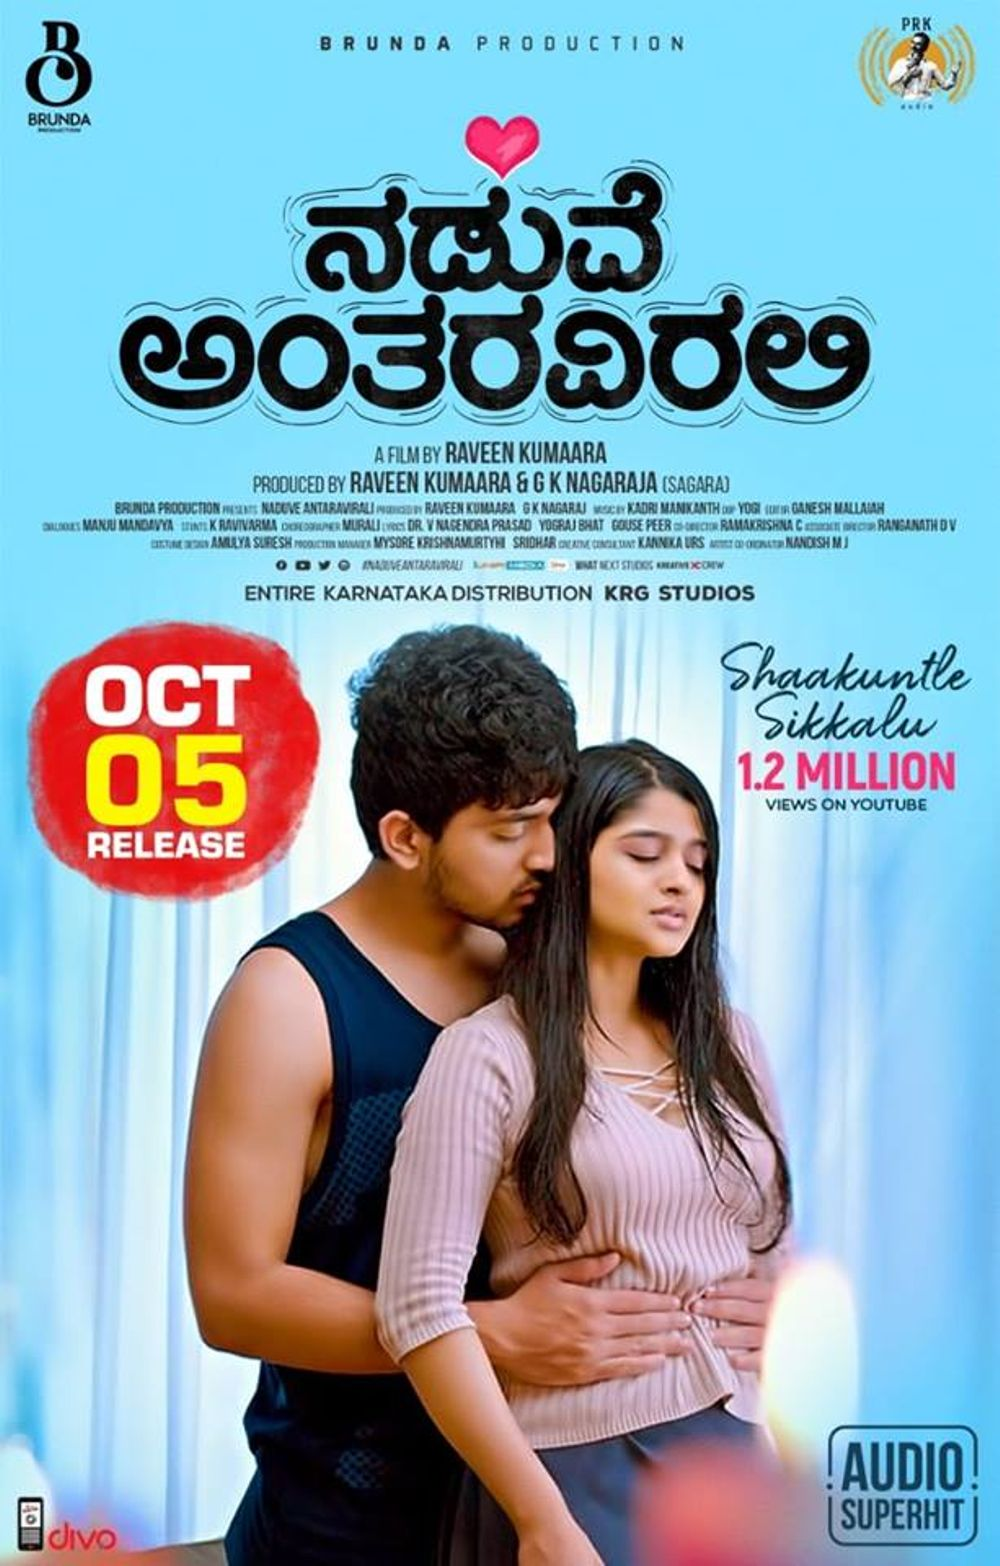 Naduve Antaravirali Movie Review Kannada Movie Review